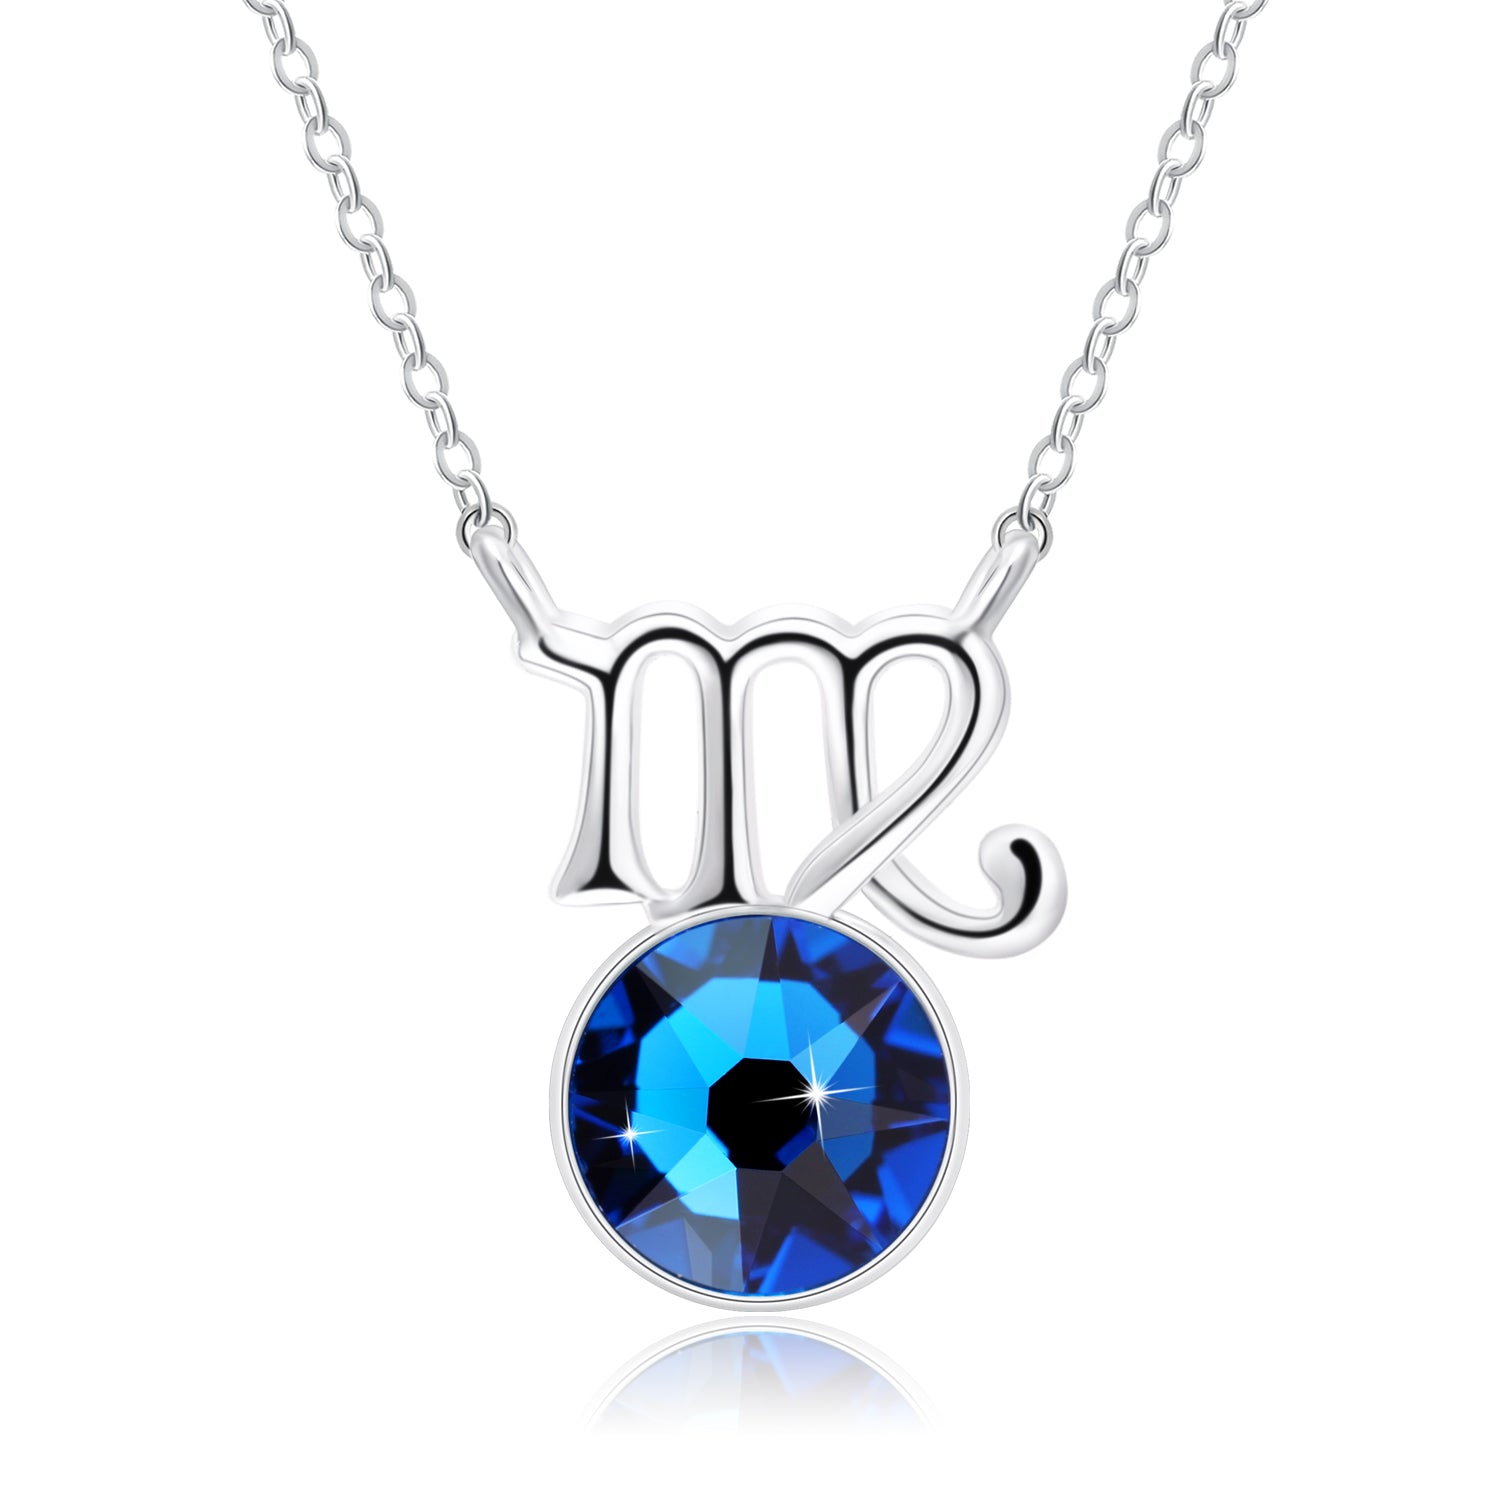 pilgrim virgo zodiac products sign necklace plated silver crystal